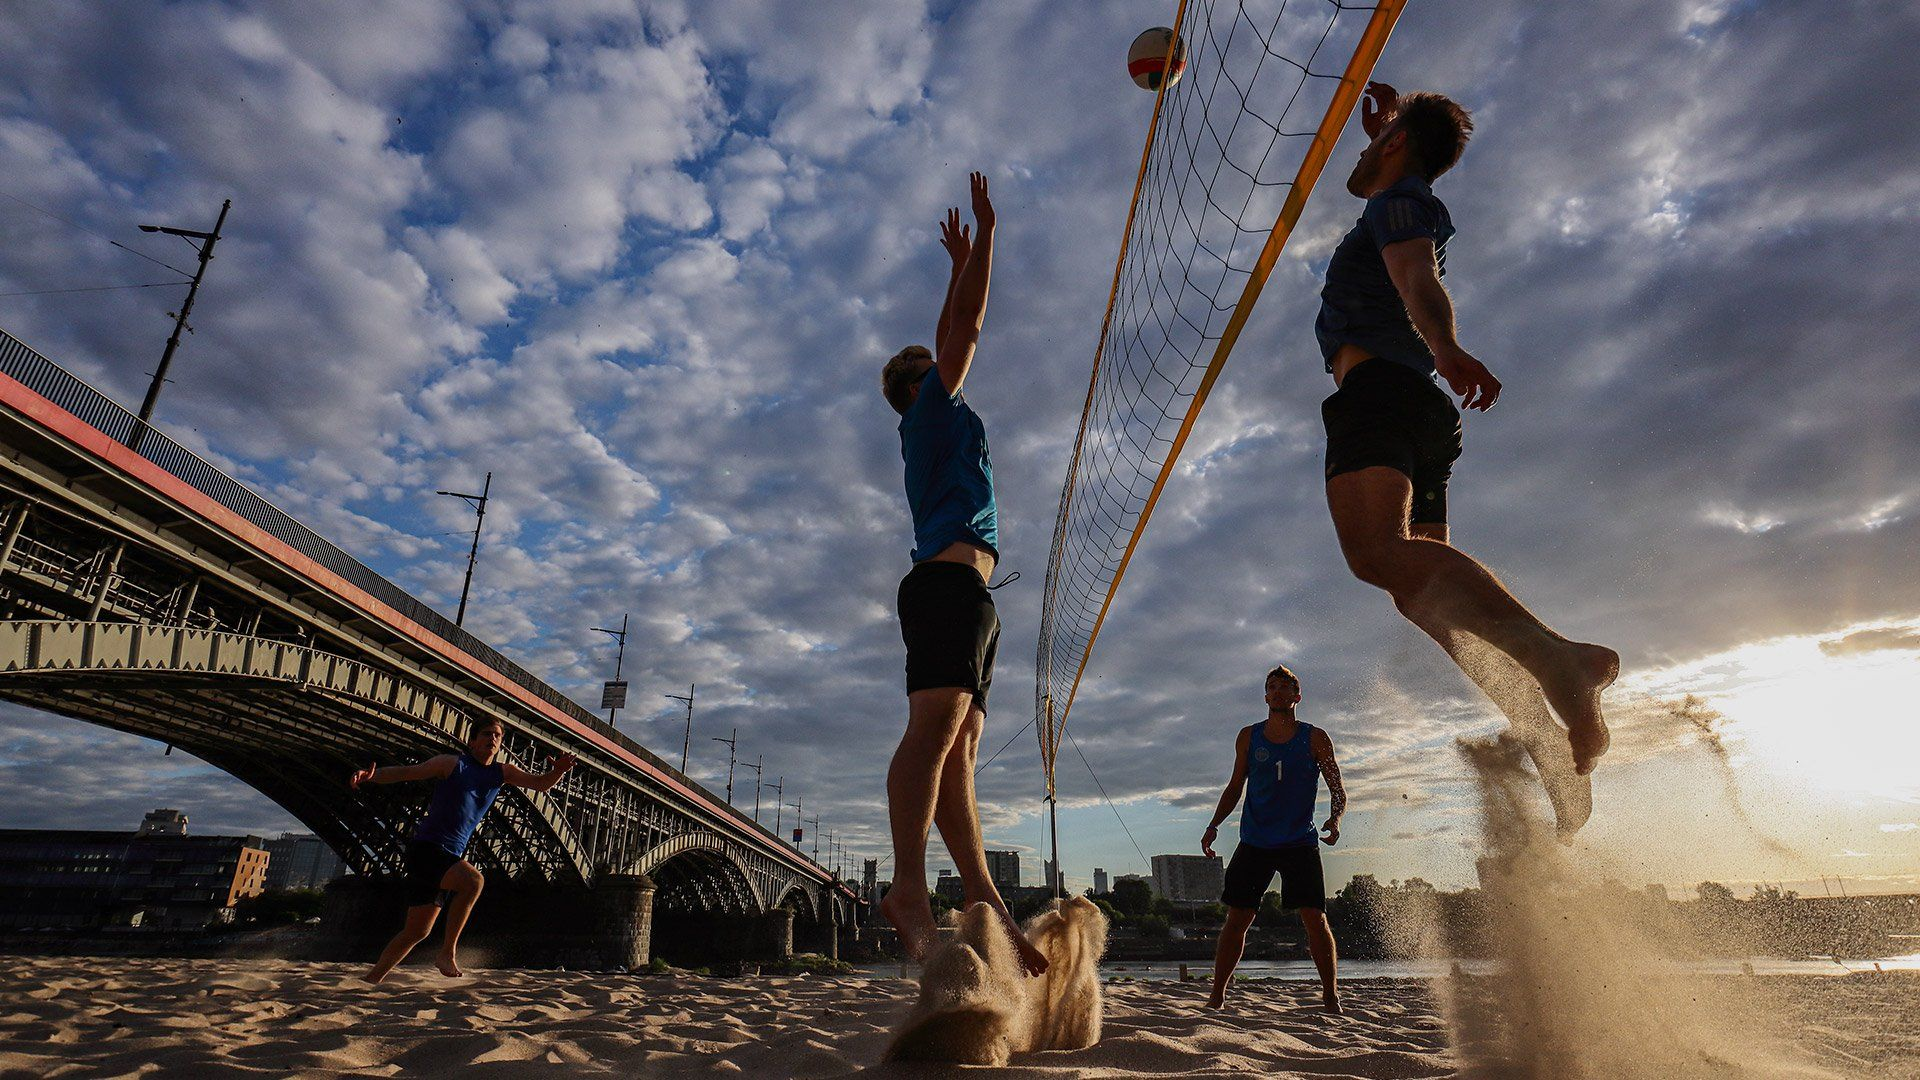 EOS M6 Mark II sample beach volleyball action sunset